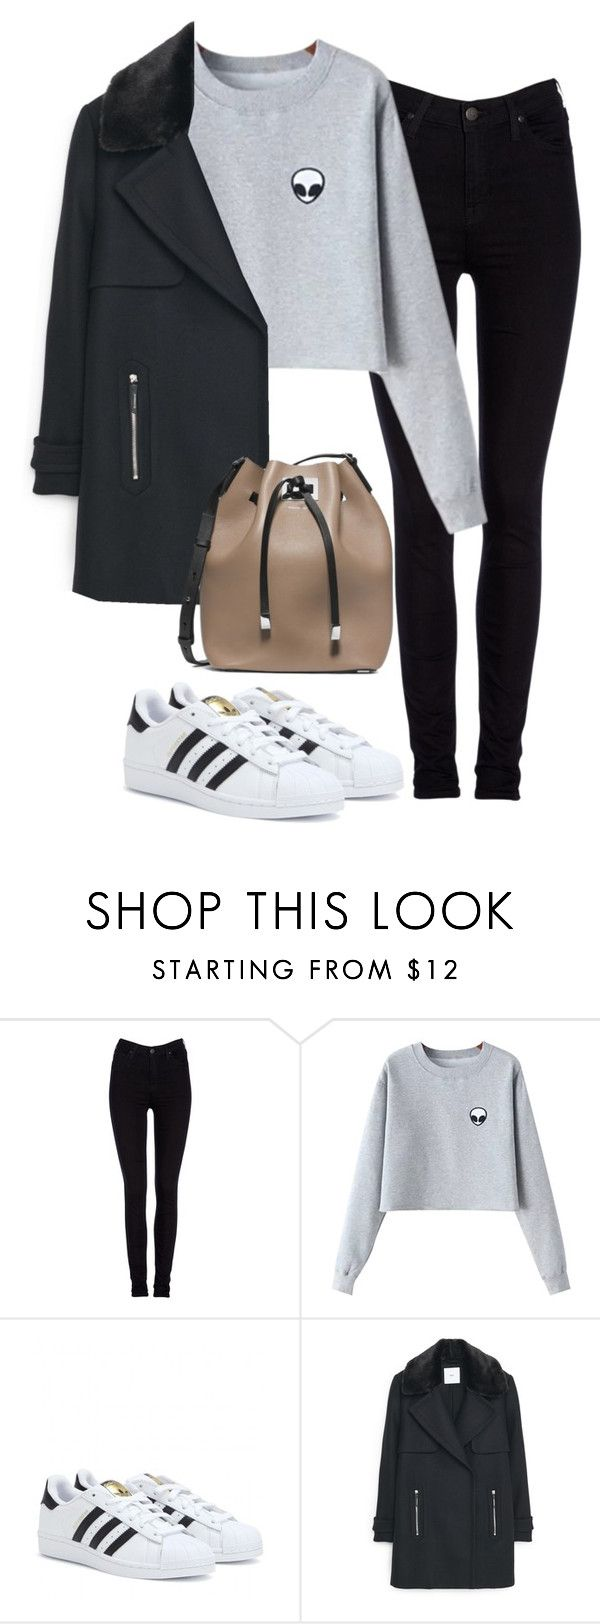 """Untitled #466"" by christyandnef on Polyvore featuring Lee, Chicnova Fashion, adidas, MANGO, Michael Kors, women's clothing, women, female, woman and misses"